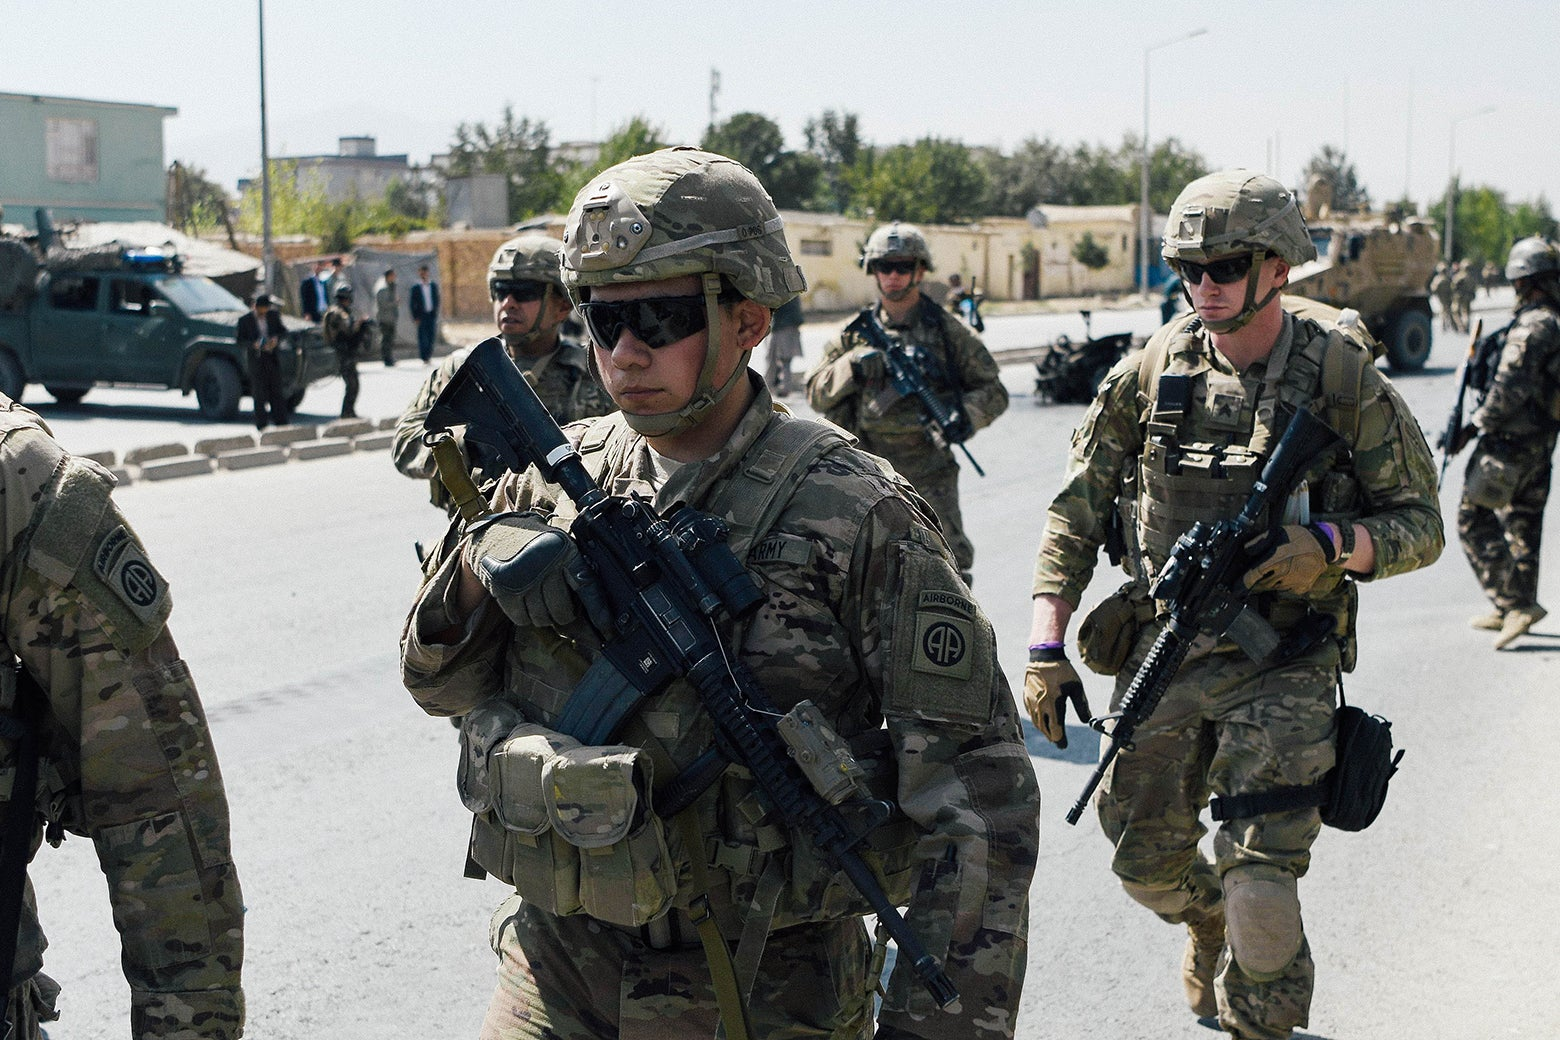 U.S. soldiers walk down a road in Kabul.